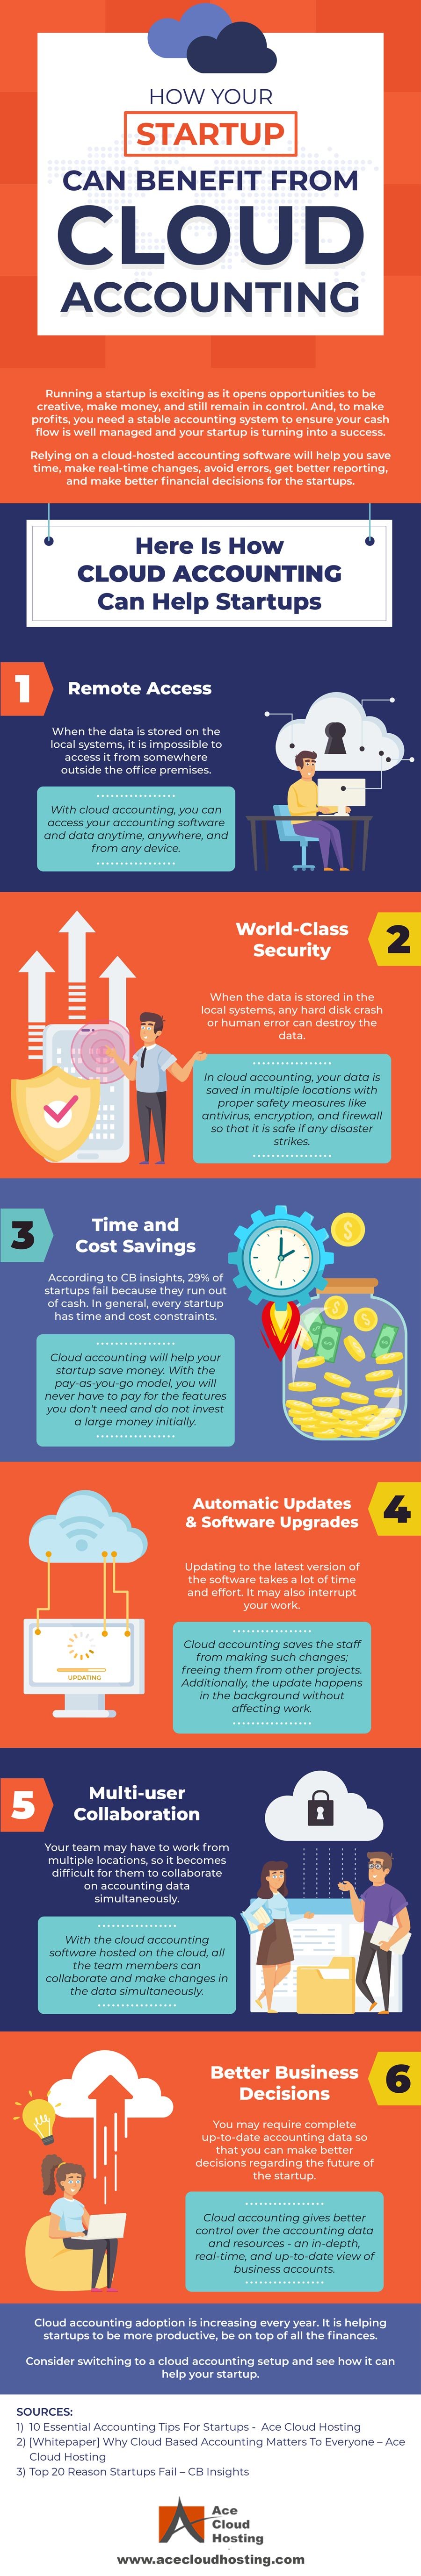 Infographic 5 Ways How Cloud Accounting Benefits Early-Stage Startups